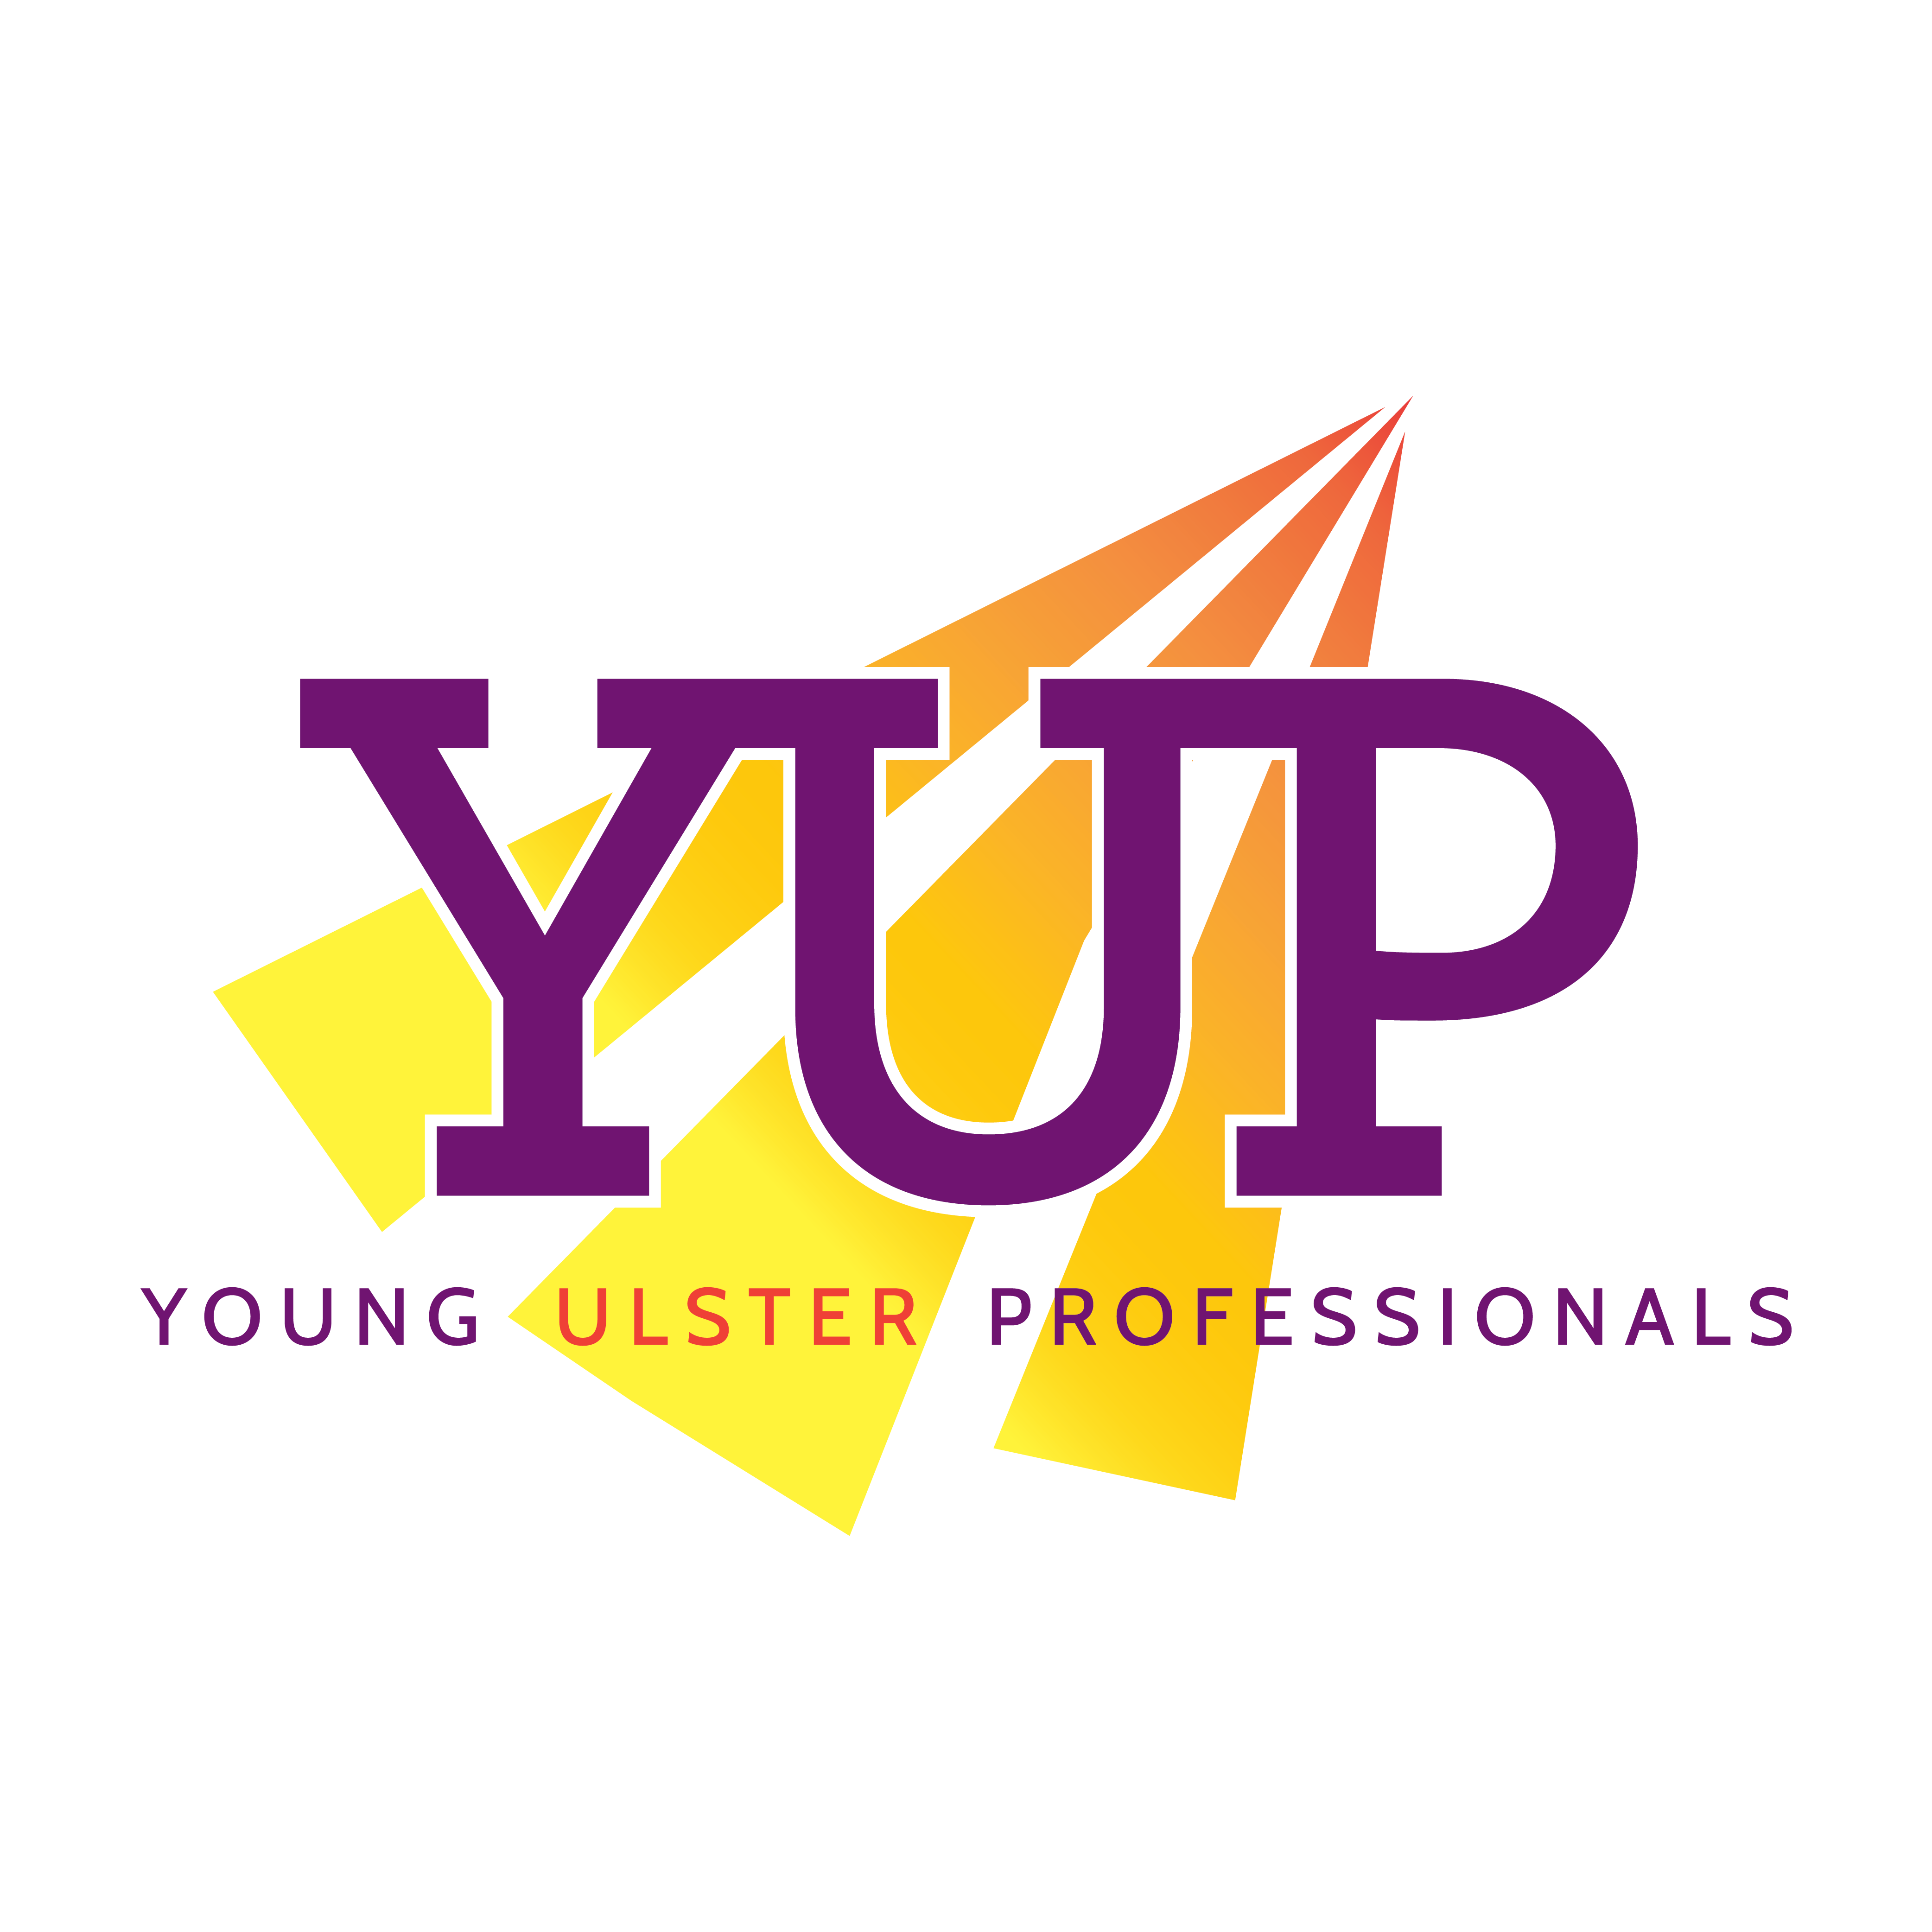 Young Ulster Professionals Logo